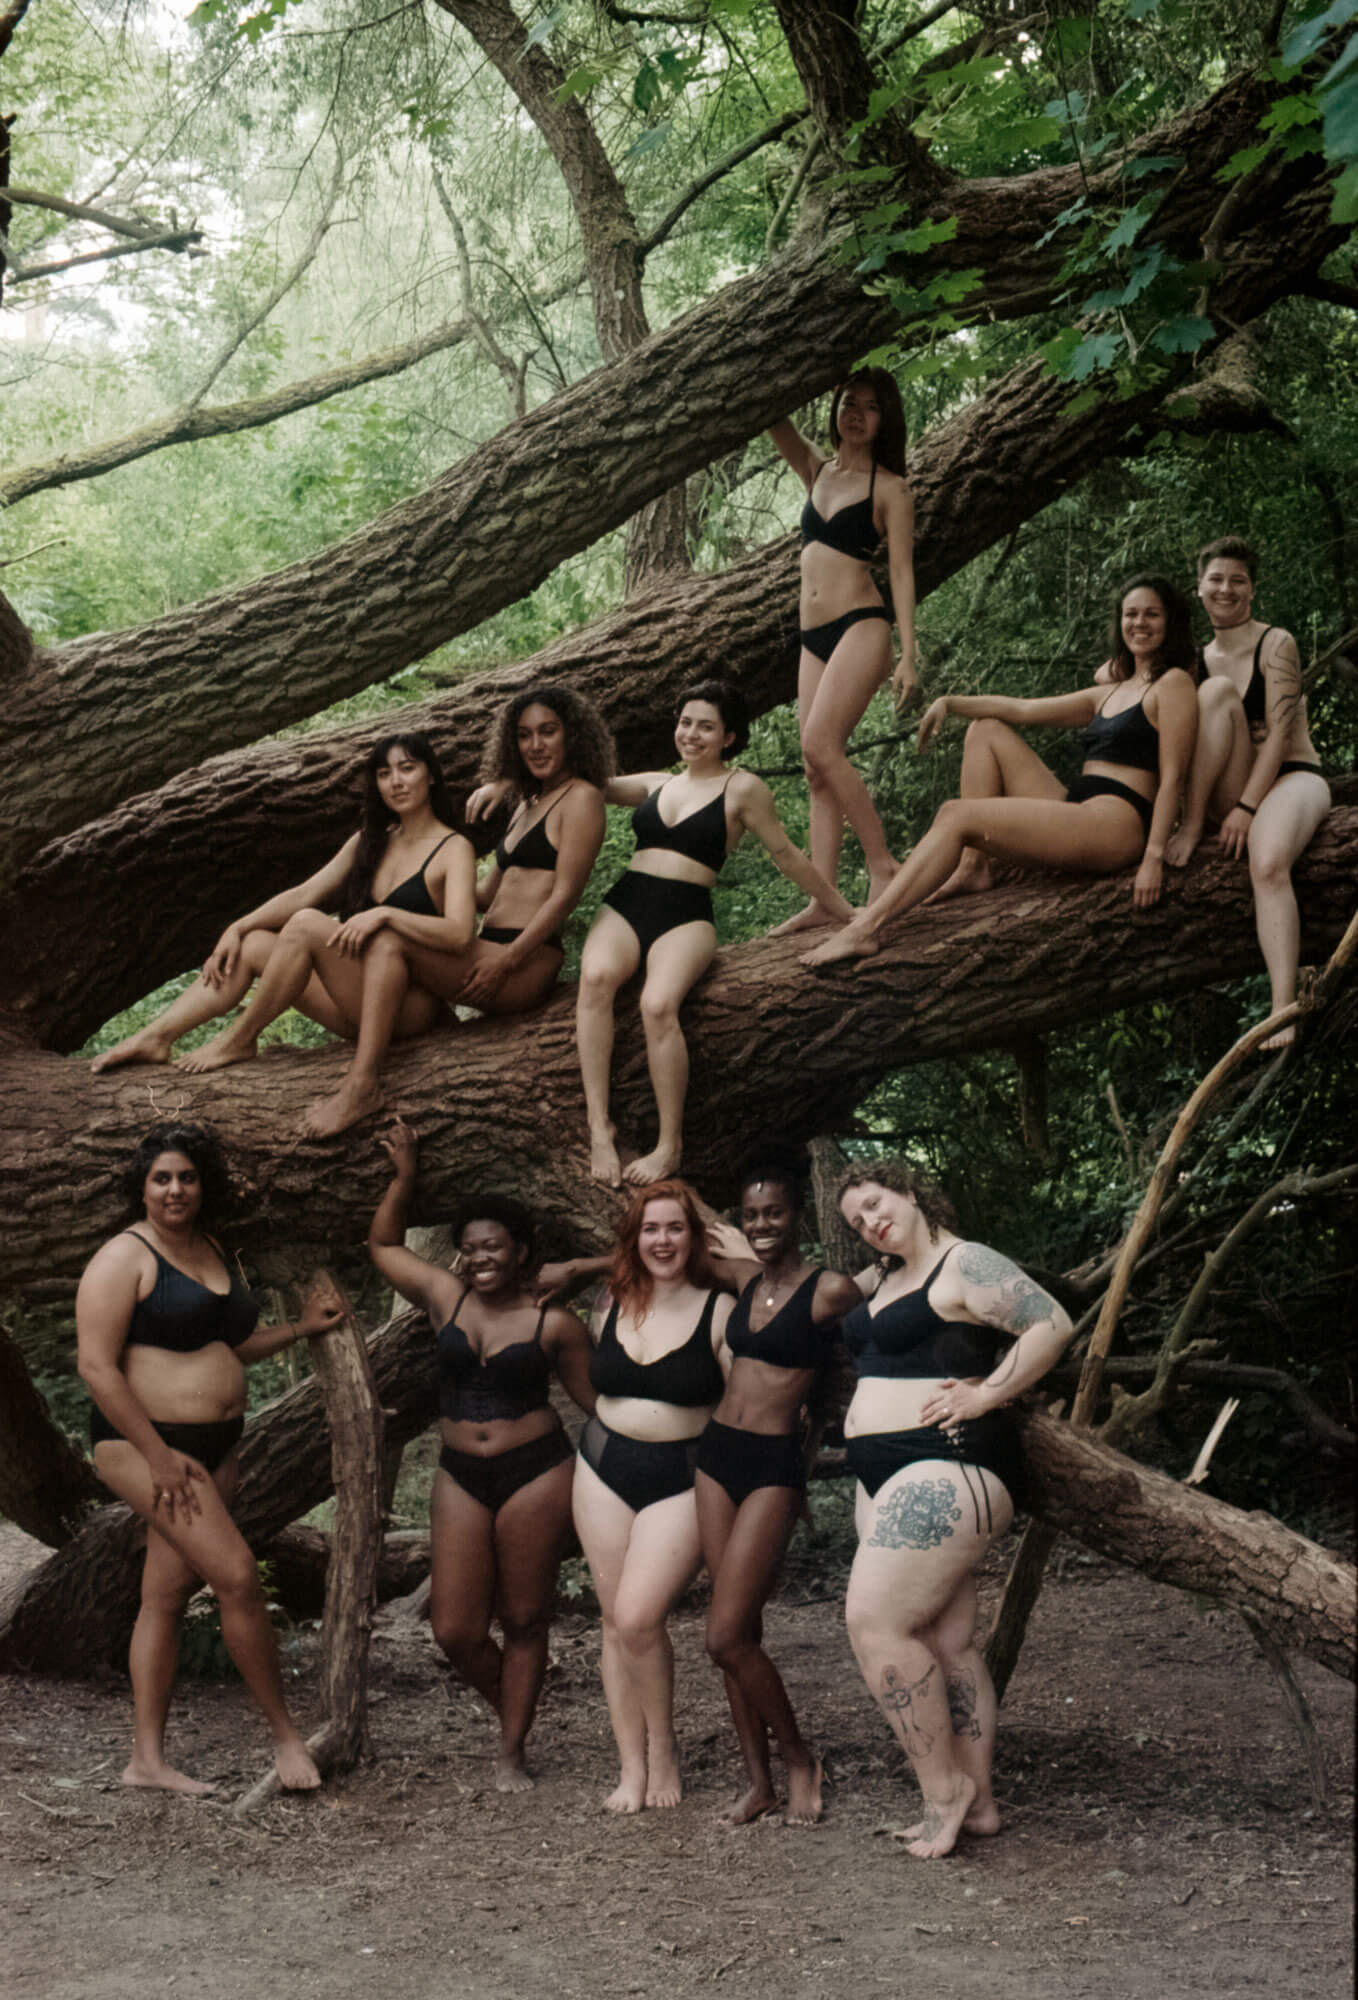 Summer Sisterhood - A photo of bodypositive women sitting on atr in Berlin, interview of Monika Kozub by Beazy on feminism and photography